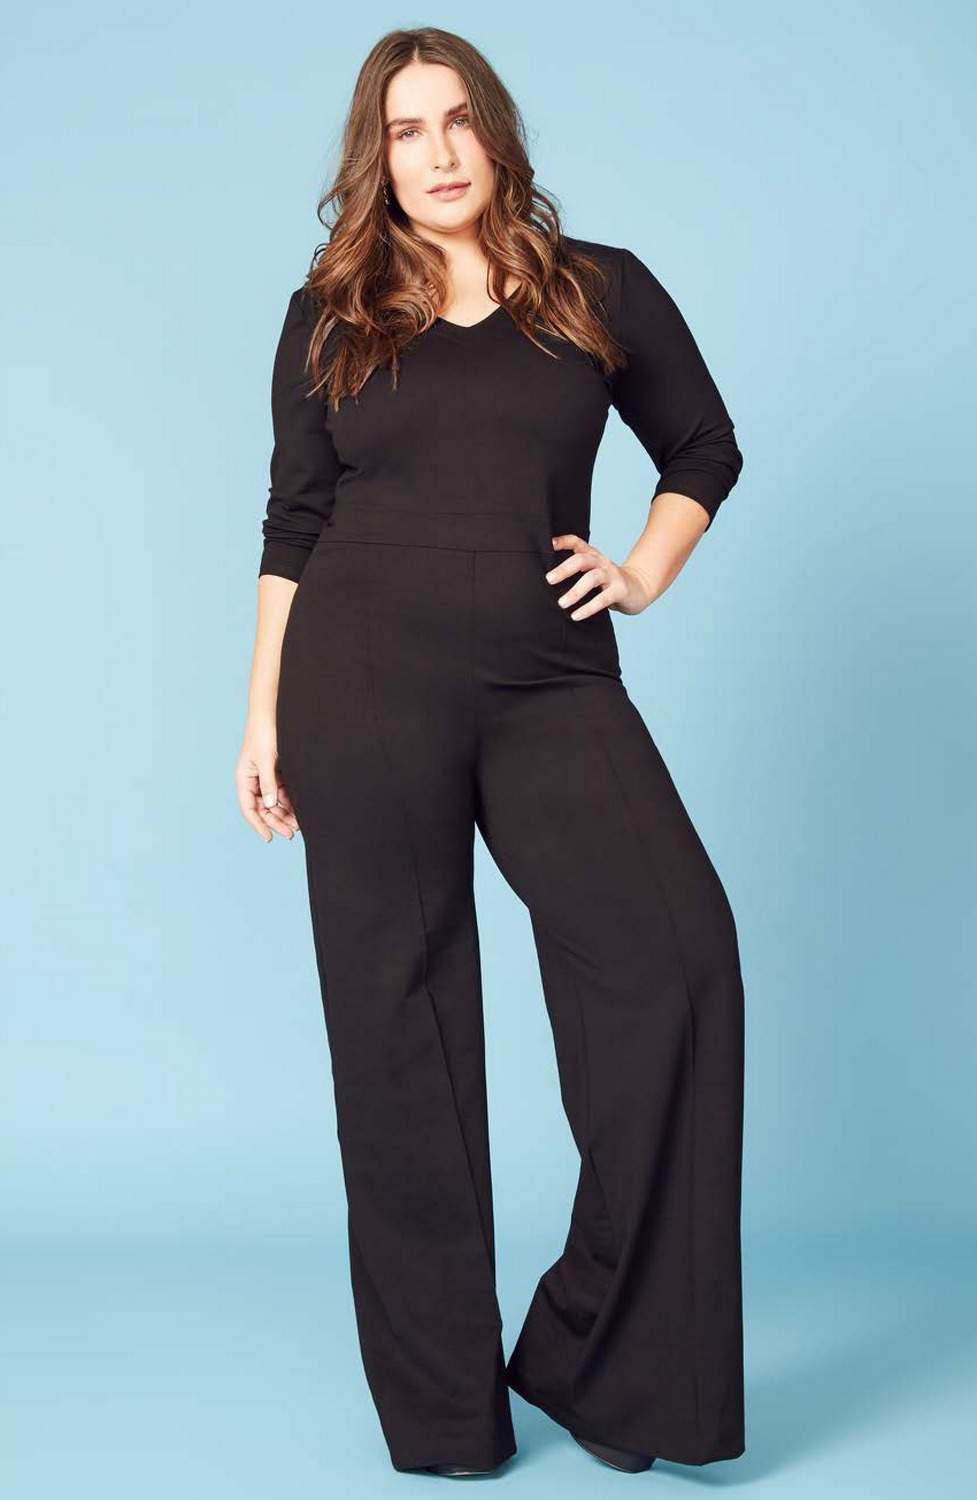 Ripley Rader Dives into Plus Sizes for Spring